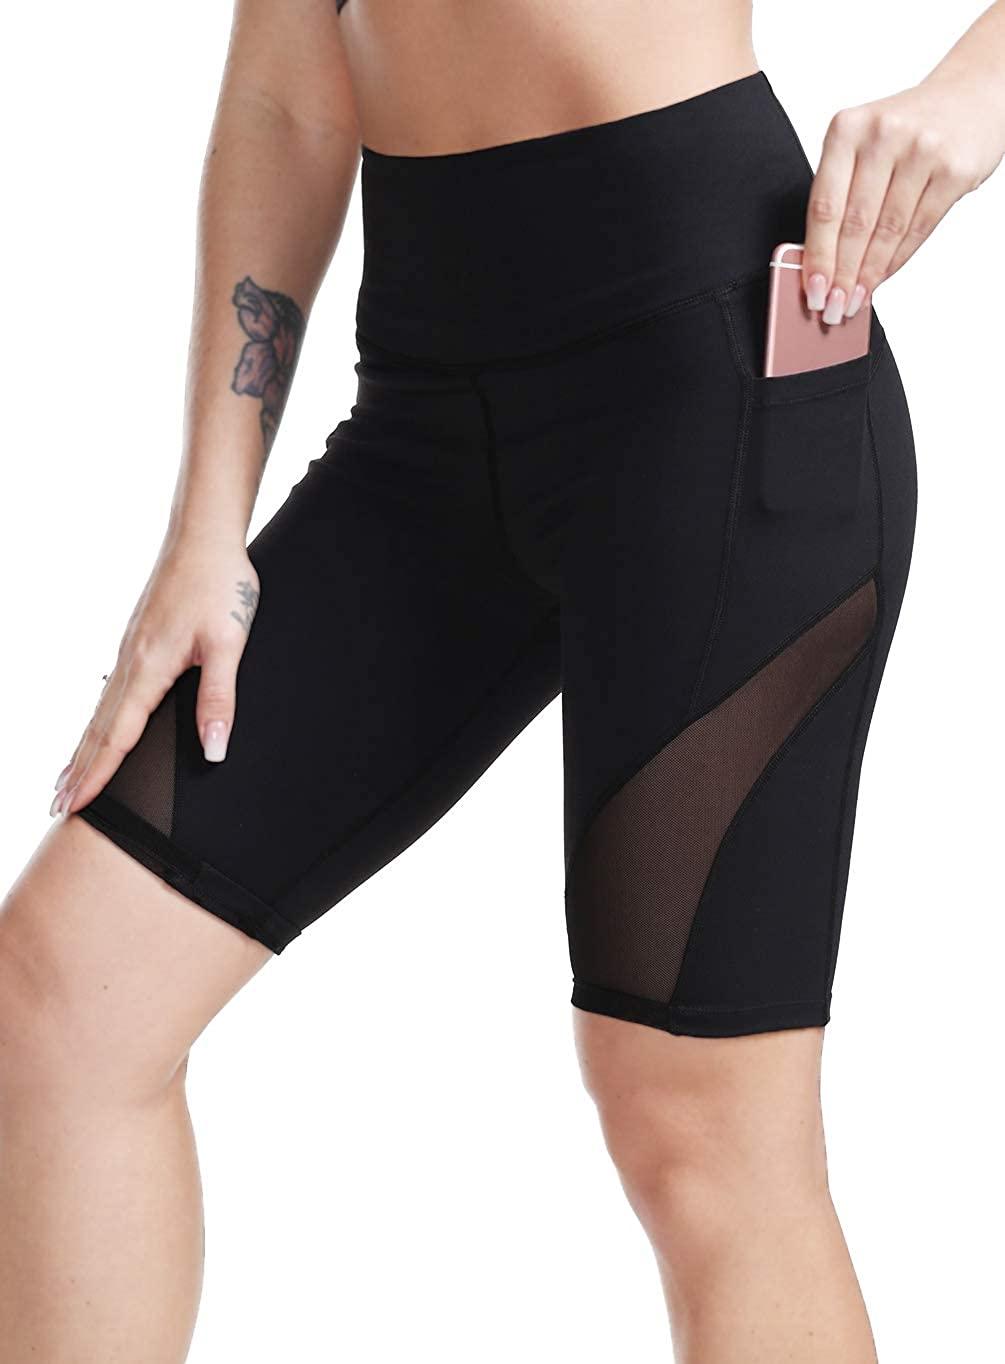 DILANNI Women's High Waist Workout Shorts Side with 2021new Excellent shipping free Yoga Pocket